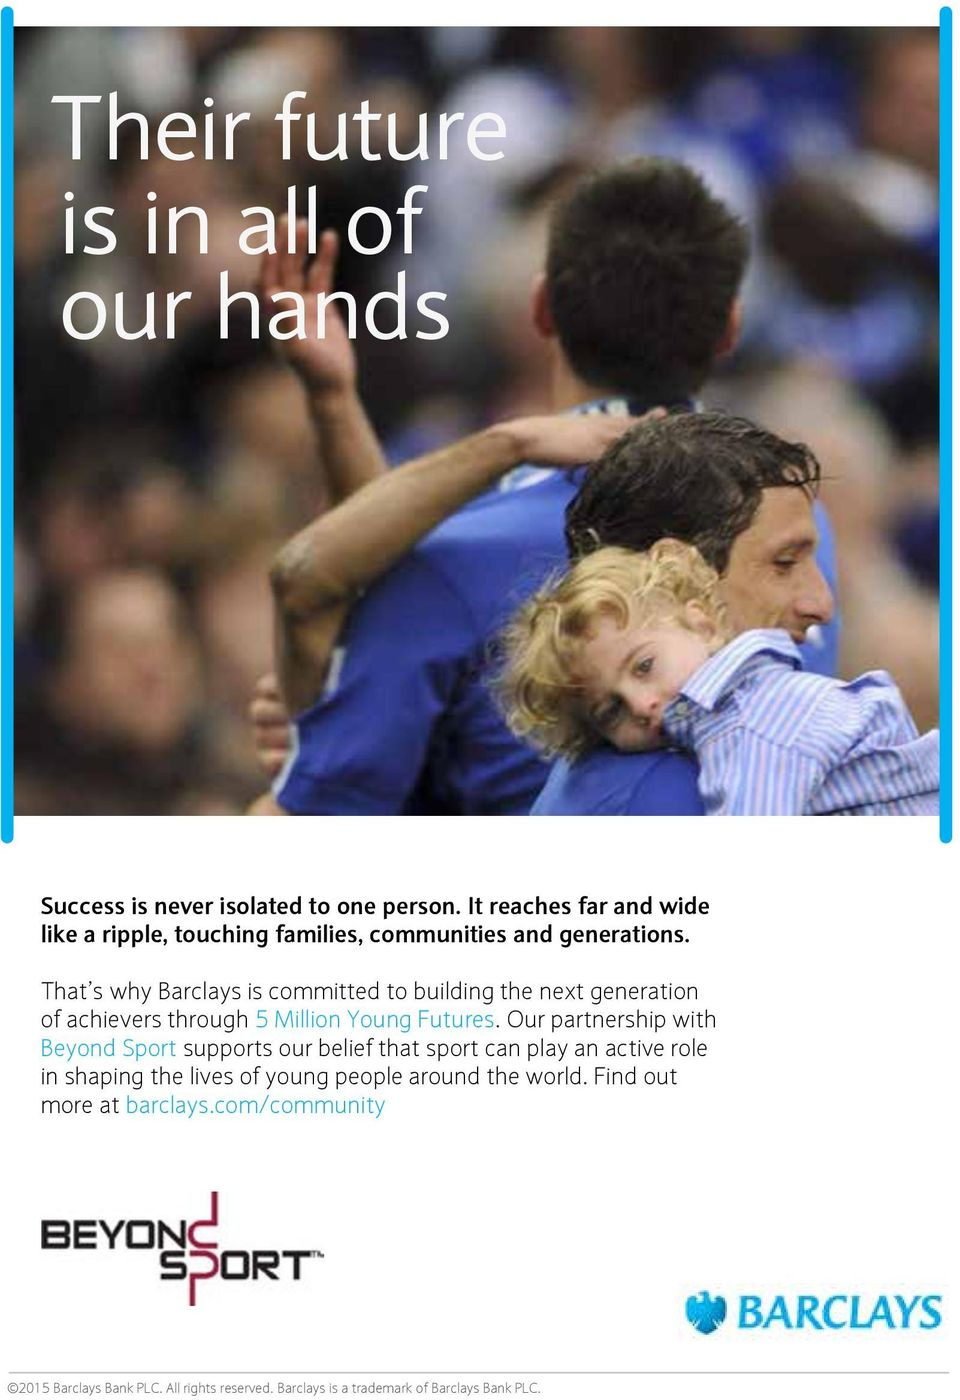 That s why Barclays is committed to building the next generation of achievers through 5 Million Young Futures.